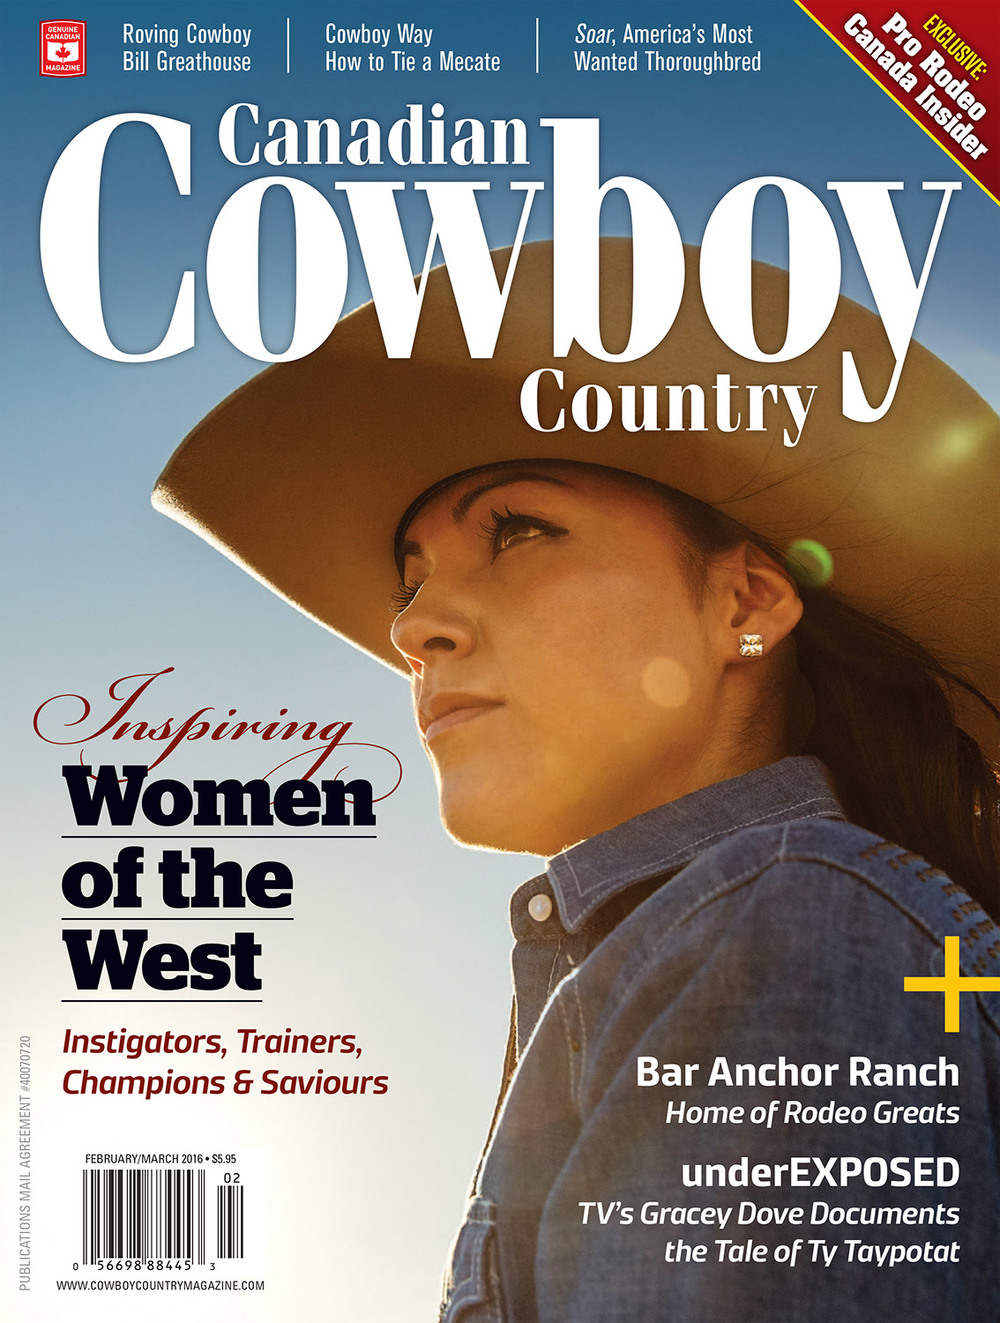 Canadian Cowboy Country Magazine